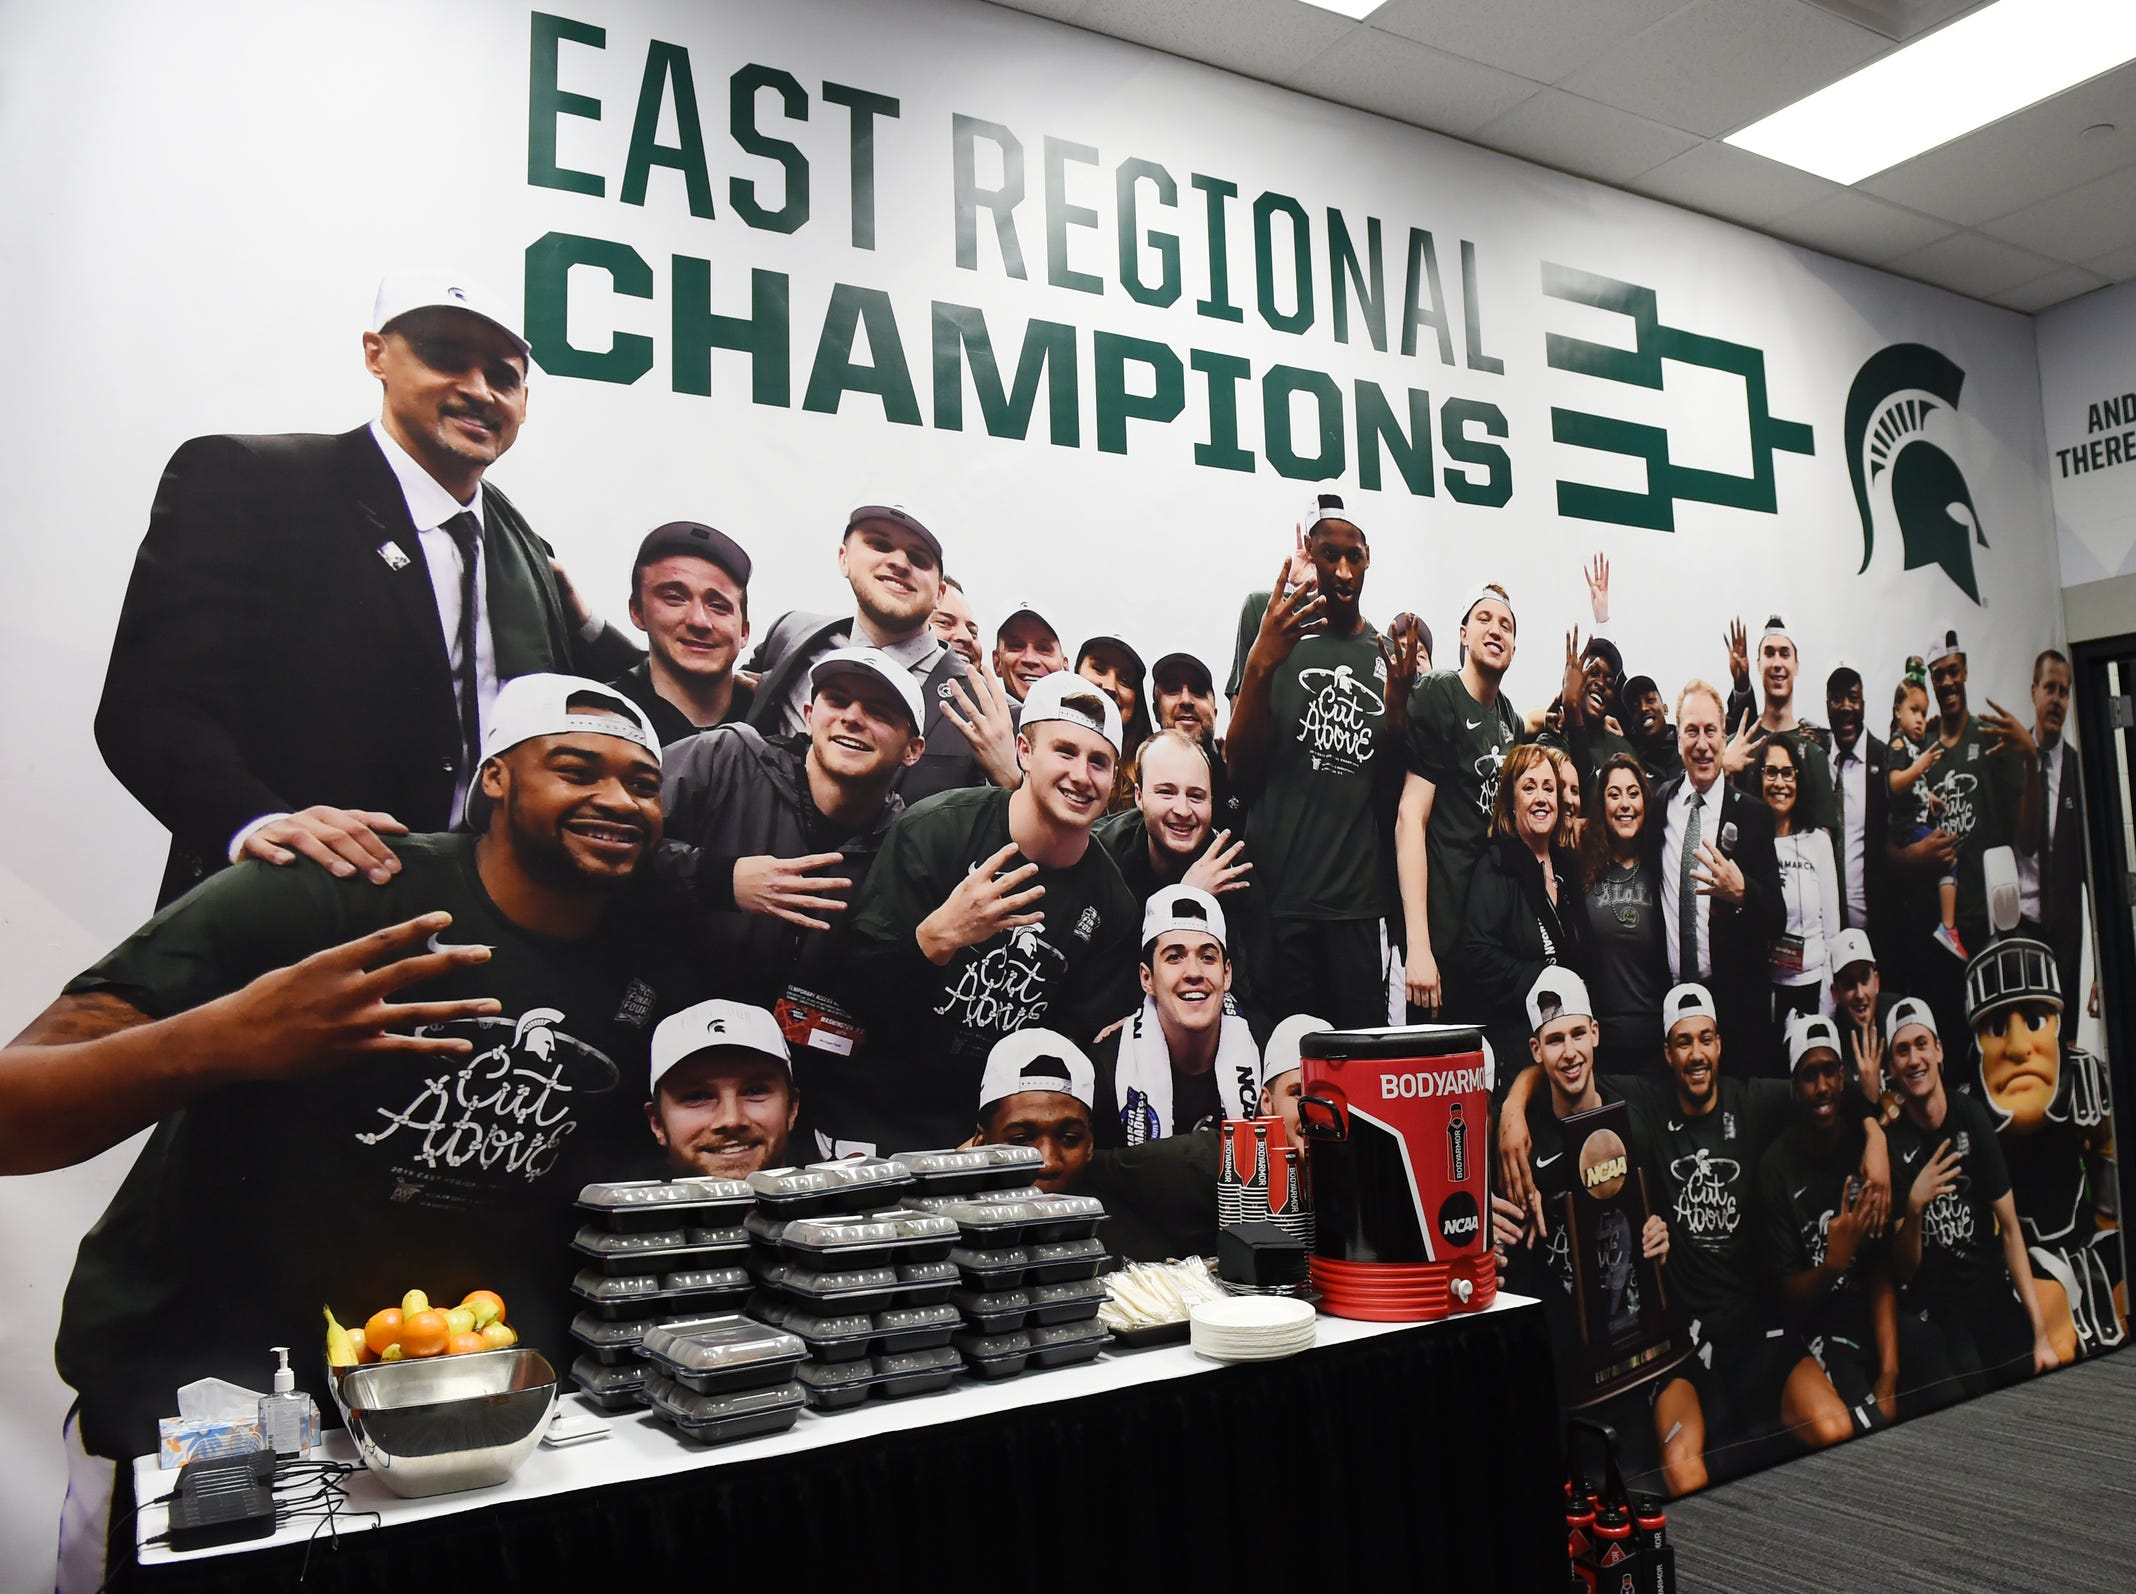 A large mural hangs in the Michigan State locker room at U.S. Bank Stadium for the Final Four in Minneapolis, Minnesota on Friday, April 5, 2019.